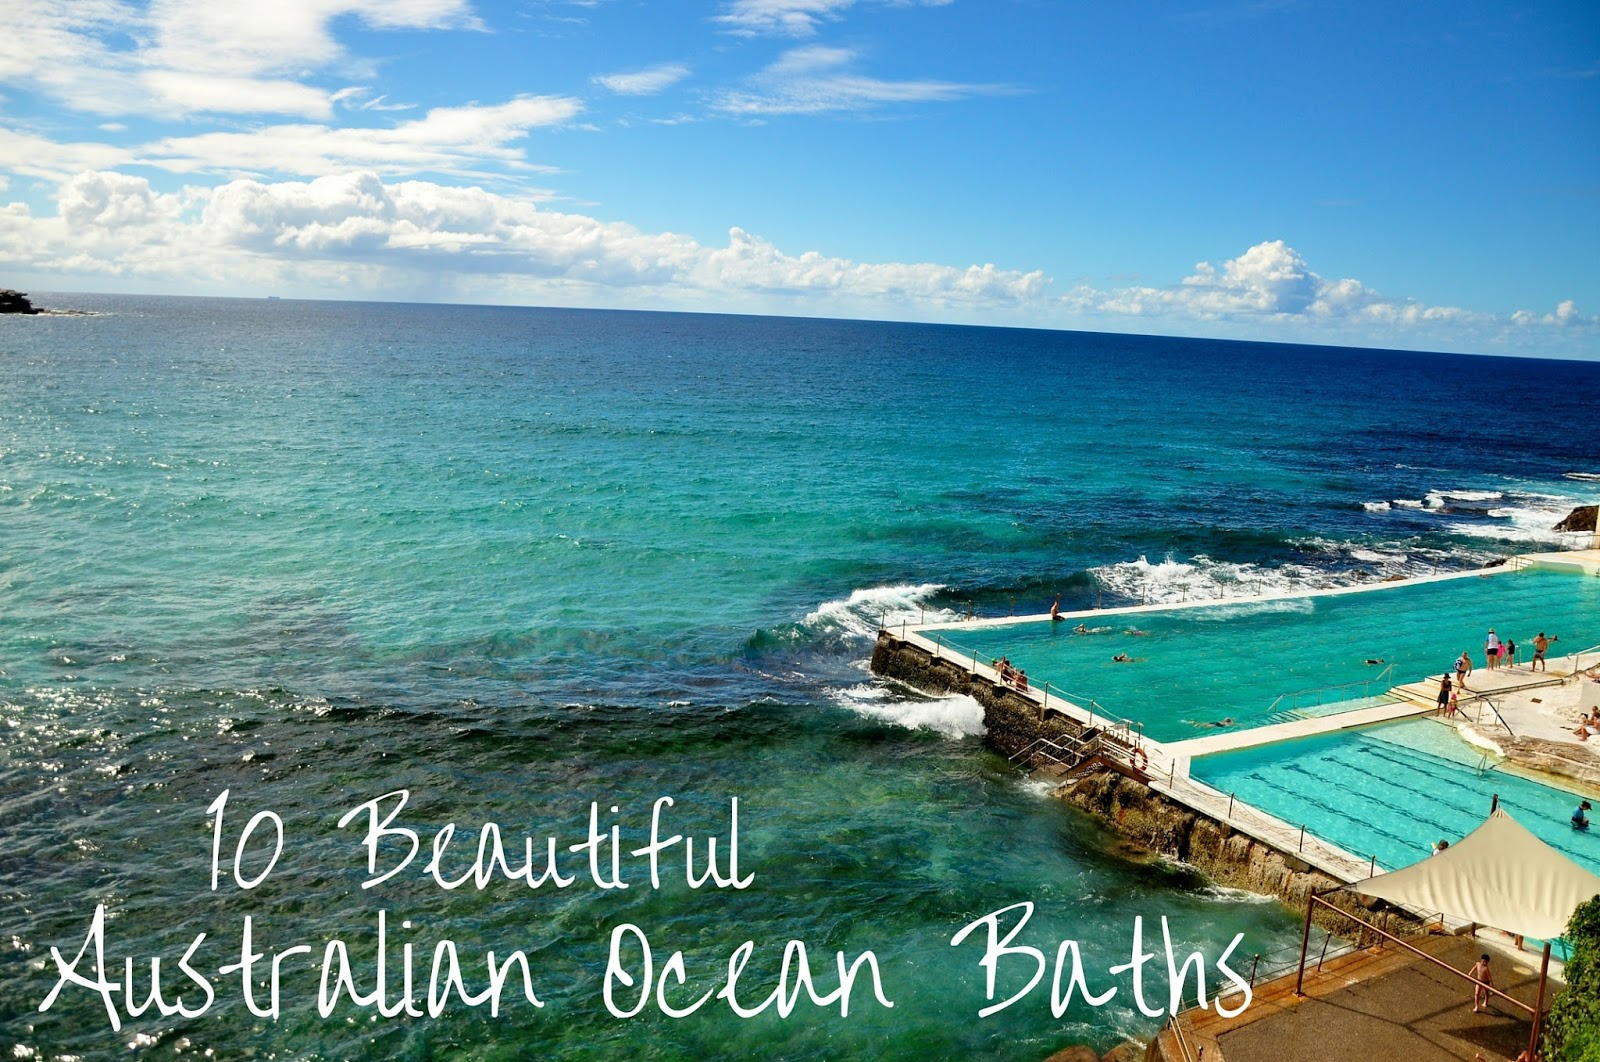 10 Beautiful Australian Ocean Baths